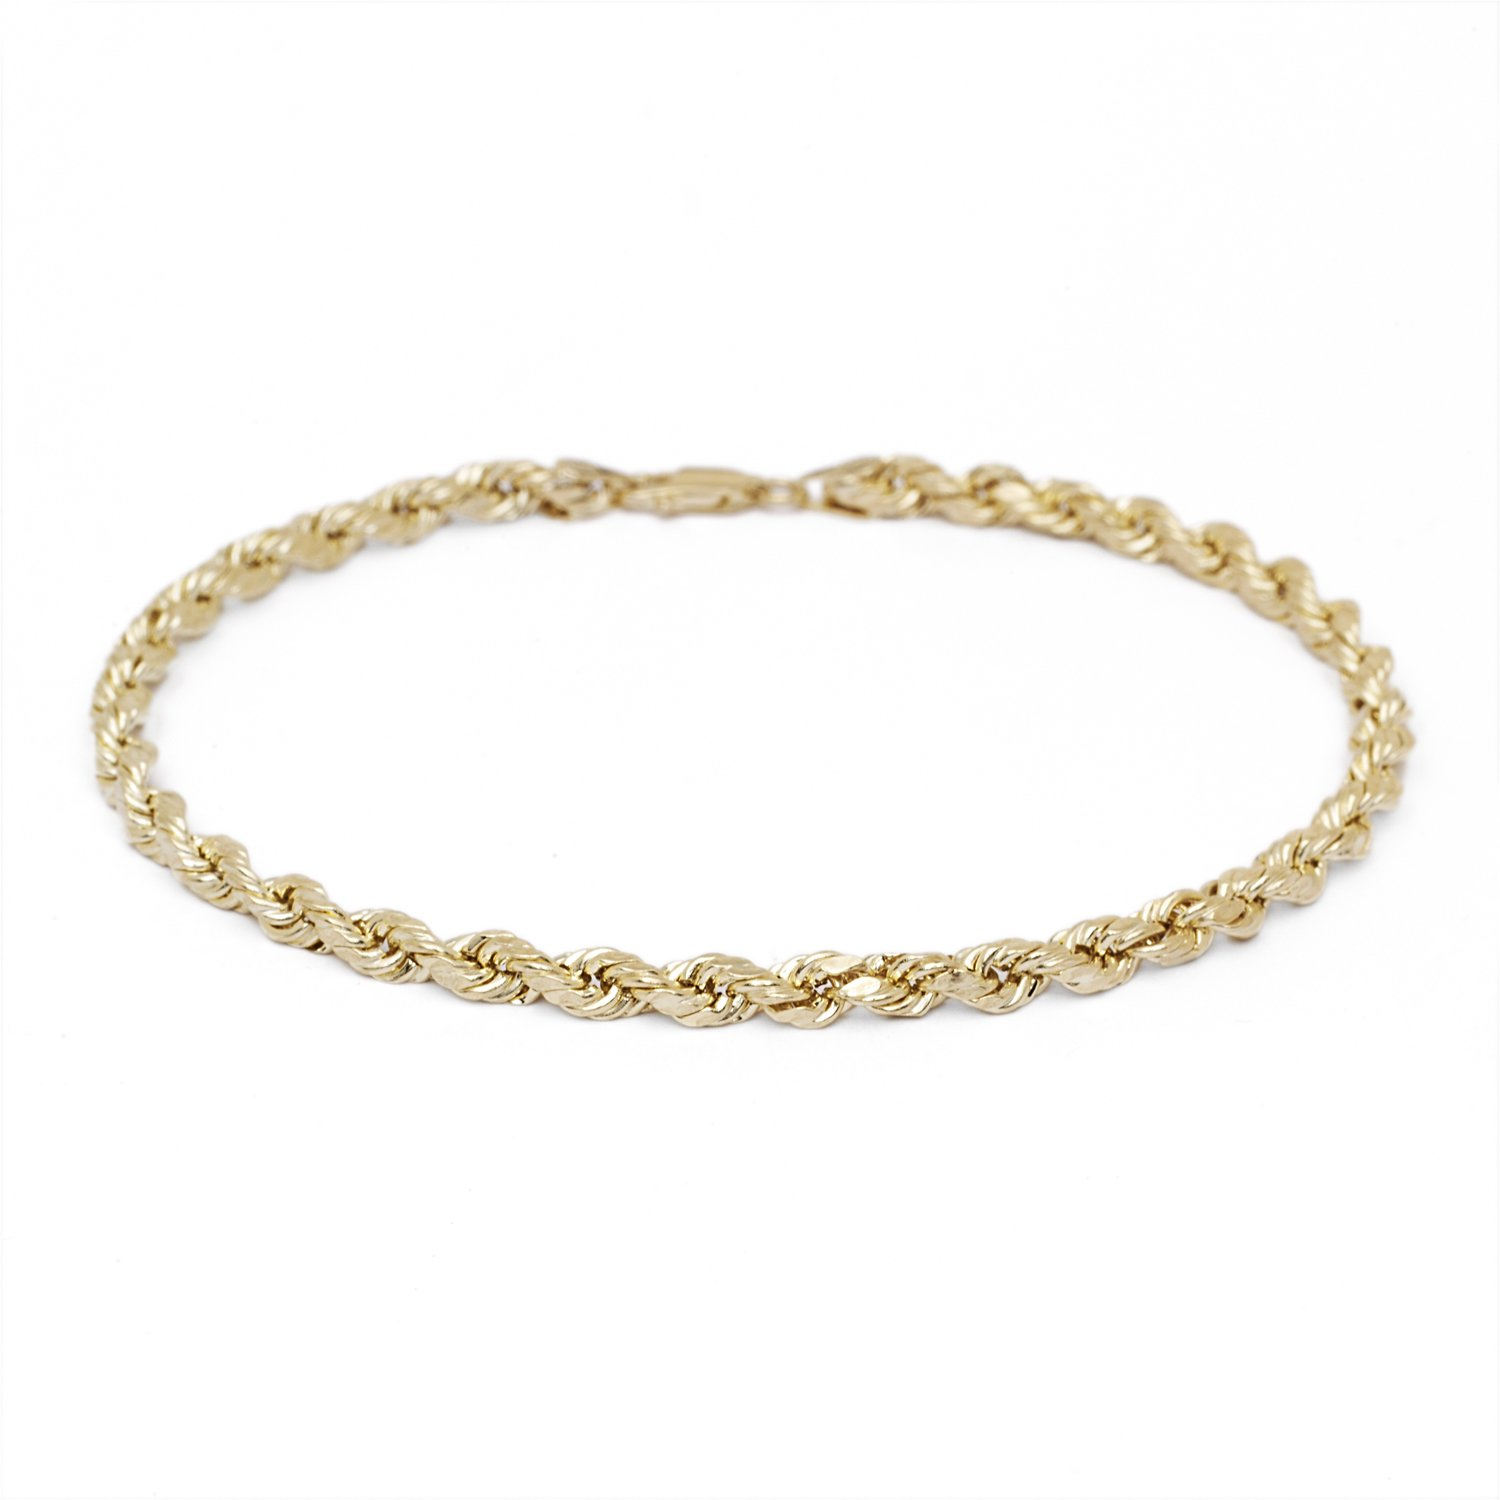 "10k Fine Gold Thin Solid Diamond Cut Rope Chain Bracelet and Anklet, 2mm (0.08"")"